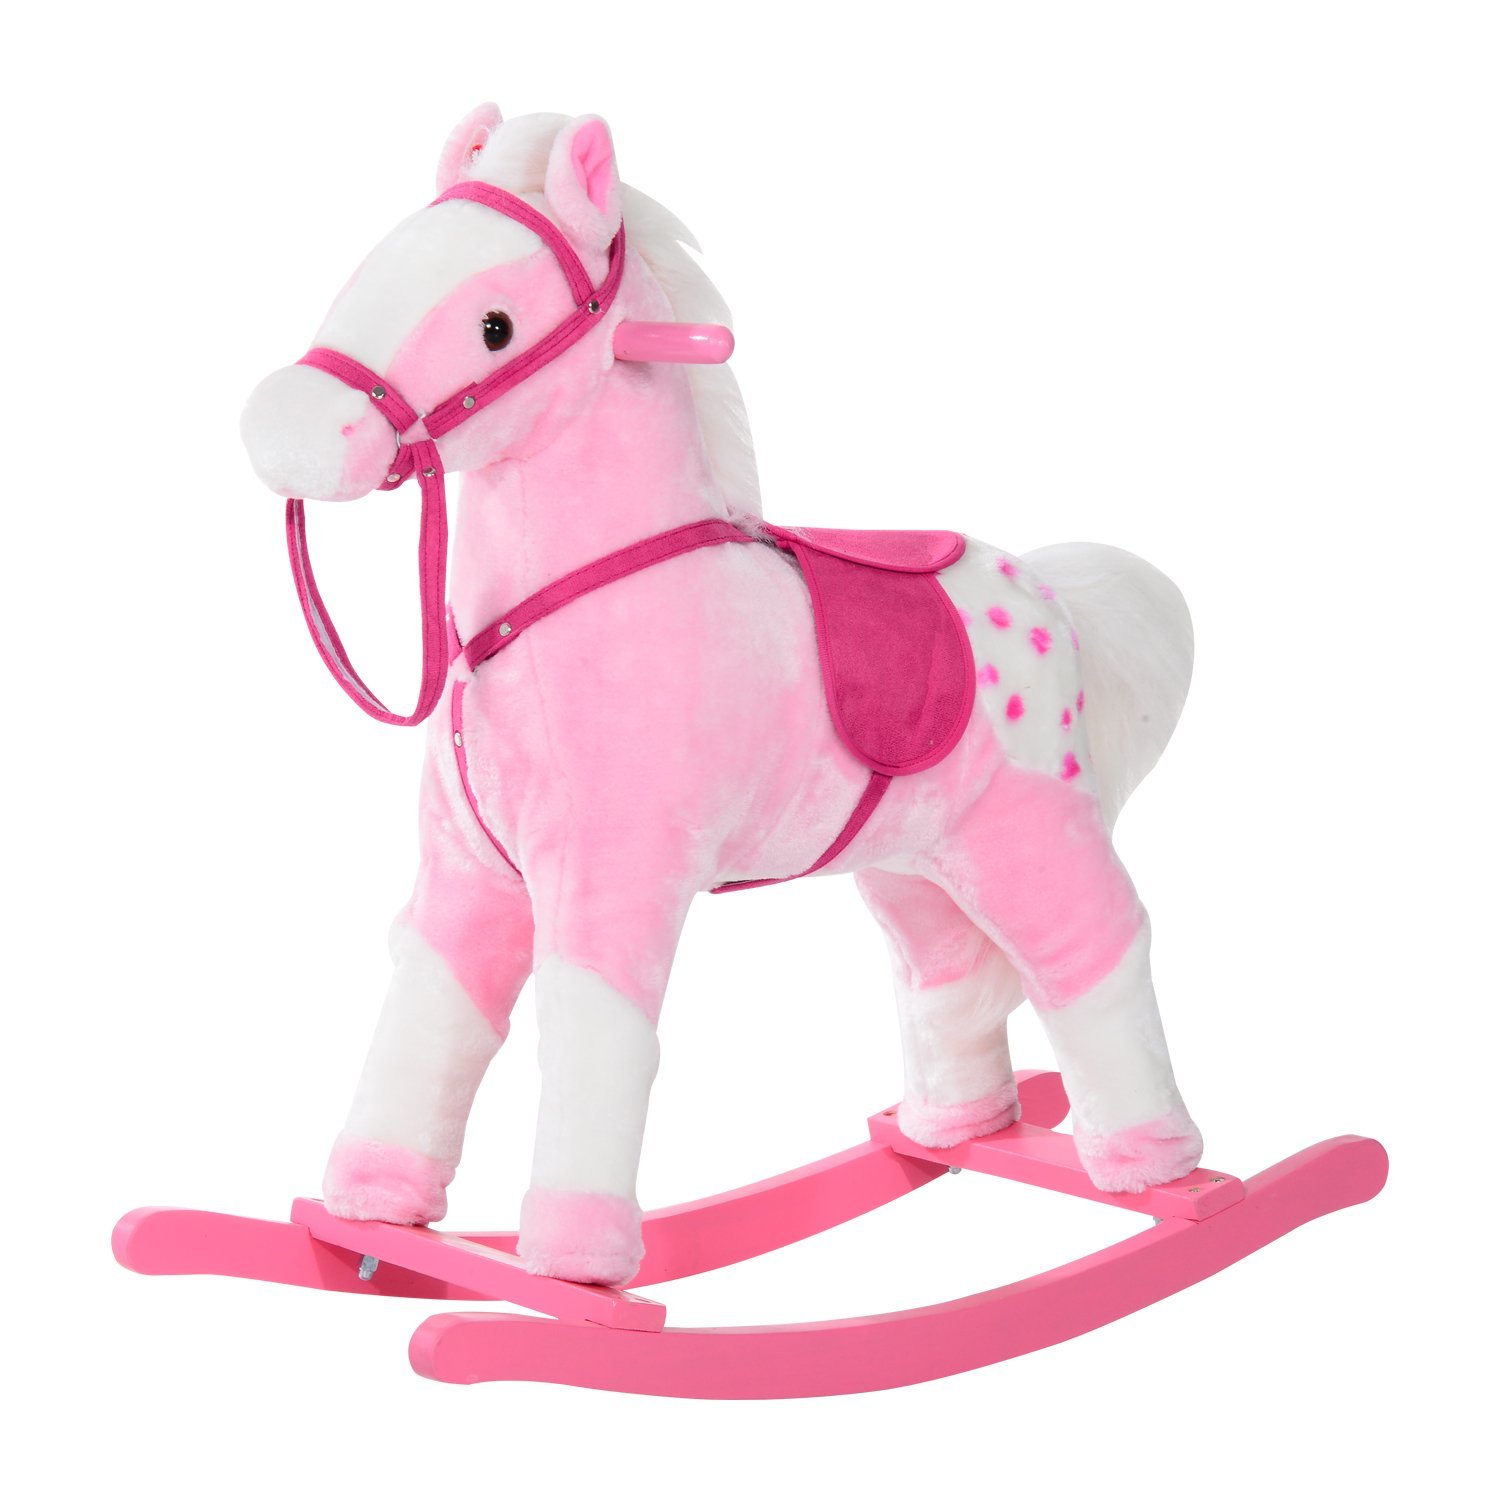 qaba rocking plush horse pony children kid ride on toy w  - qaba rocking plush horse pony children kid ride on toy w realistic sound(light pink) amazonca baby